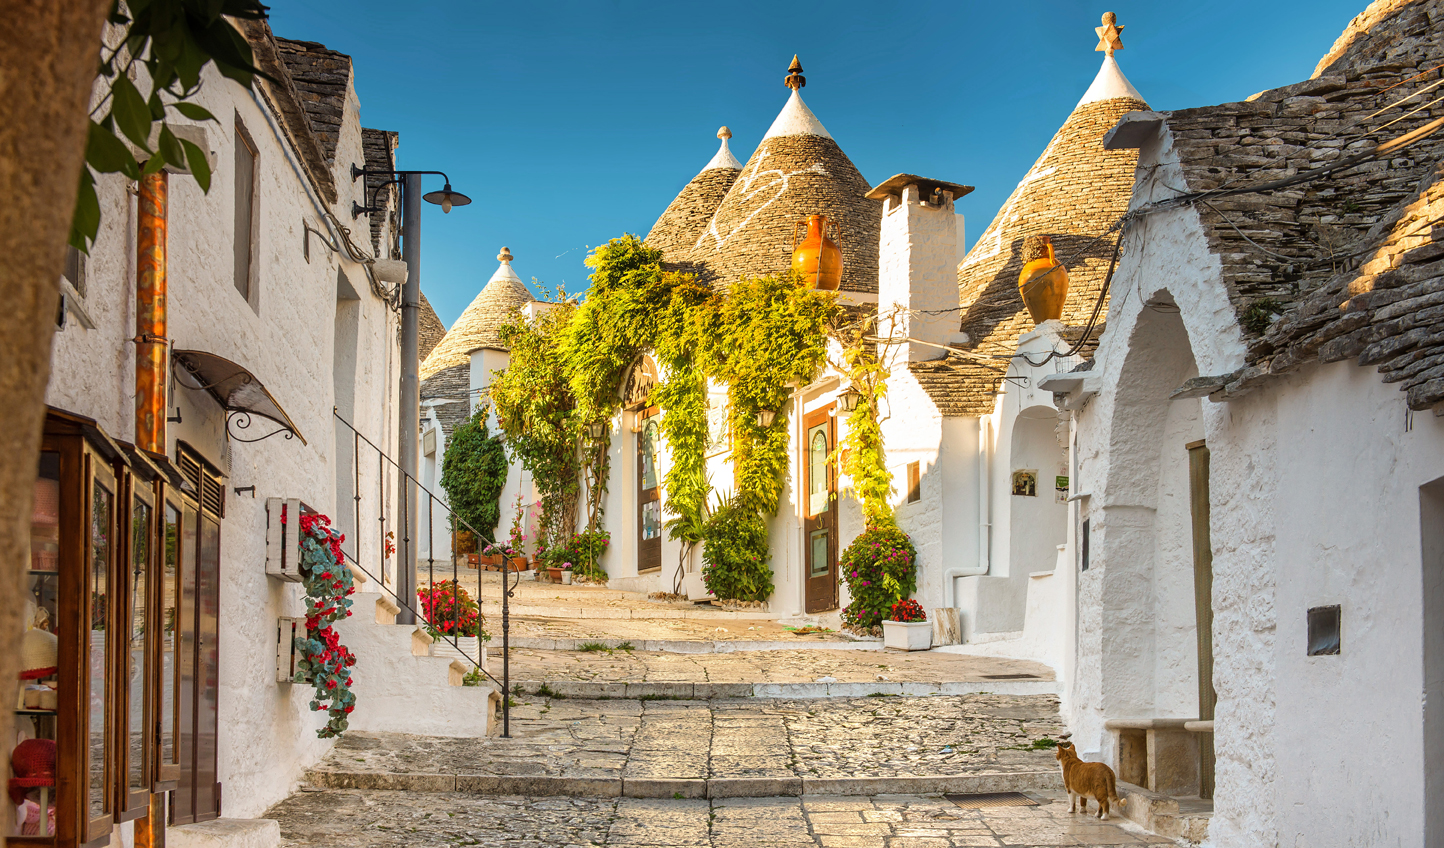 Discover the ancient trulli houses of Alberobello